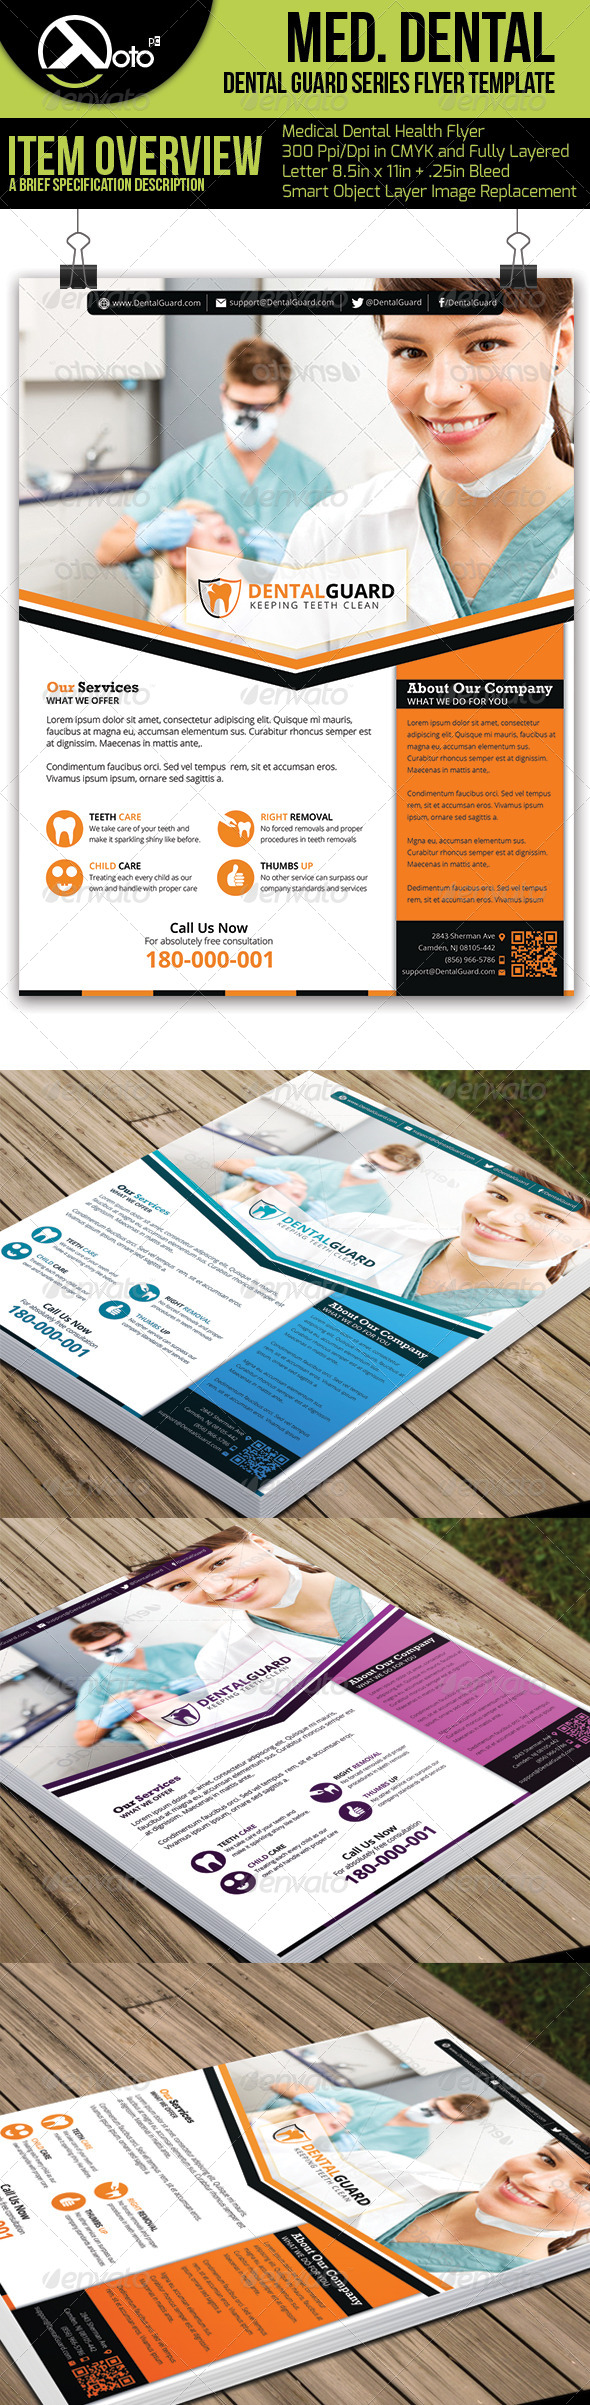 Medical Dental Flyer  V5 - Flyers Print Templates